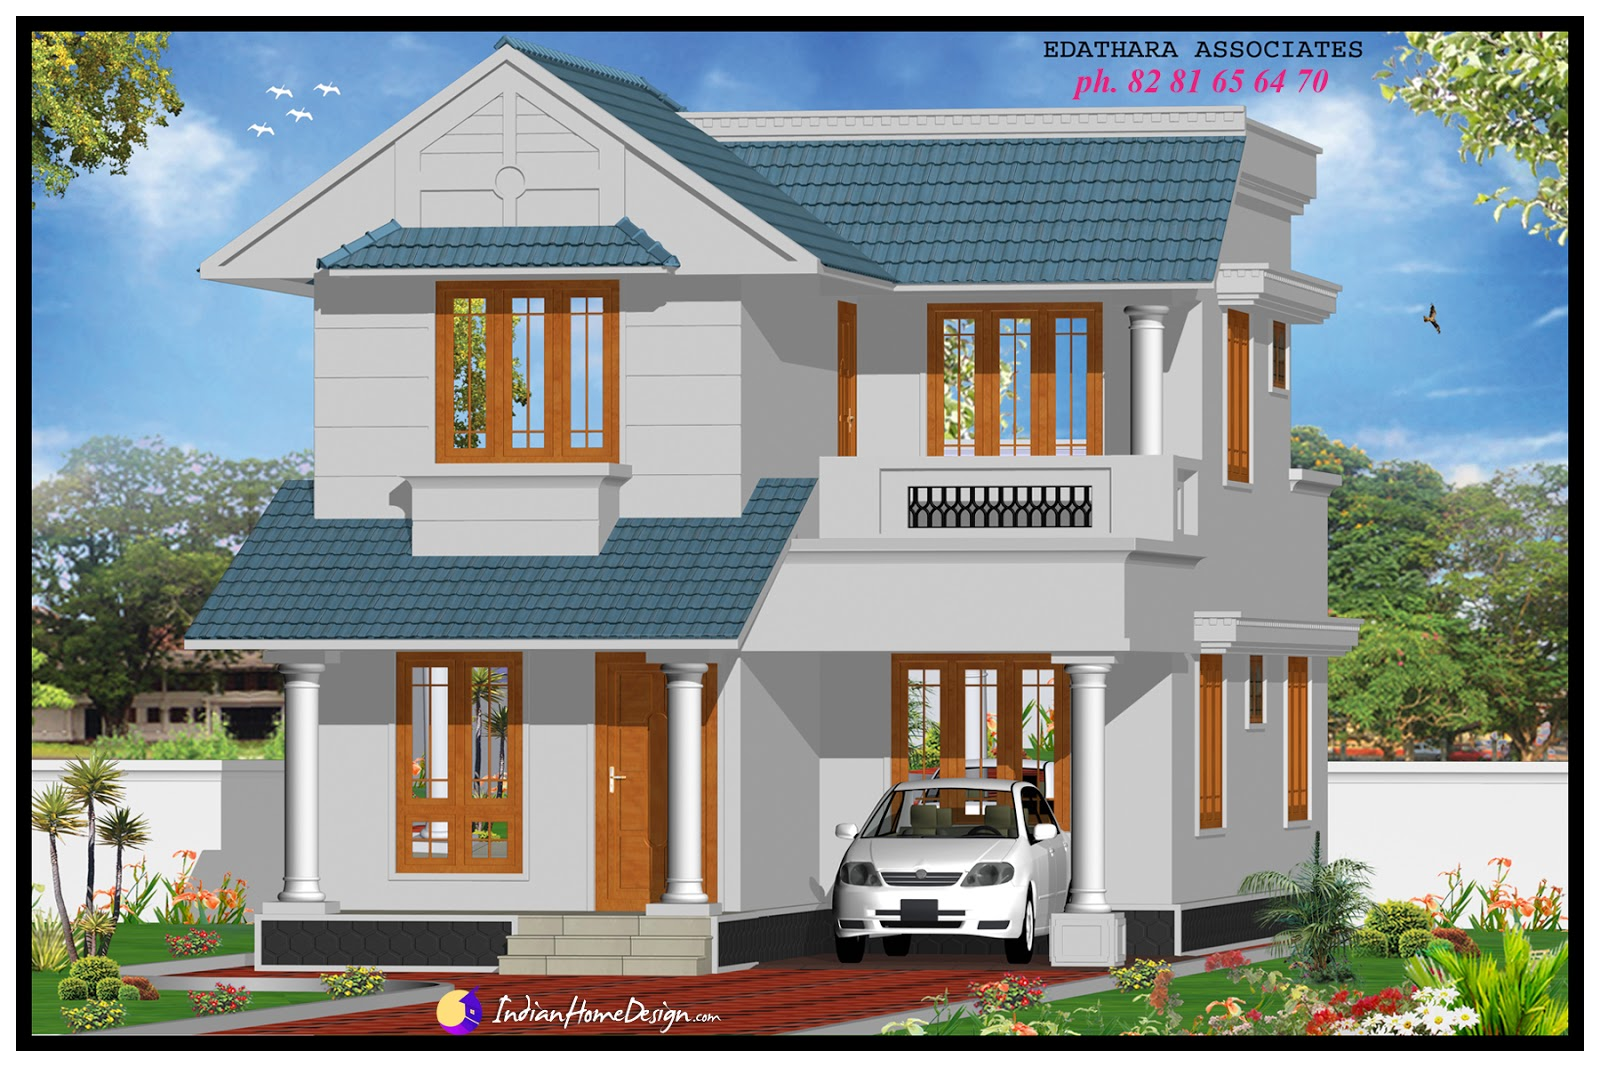 Home design and plan home design plan for House naksha image